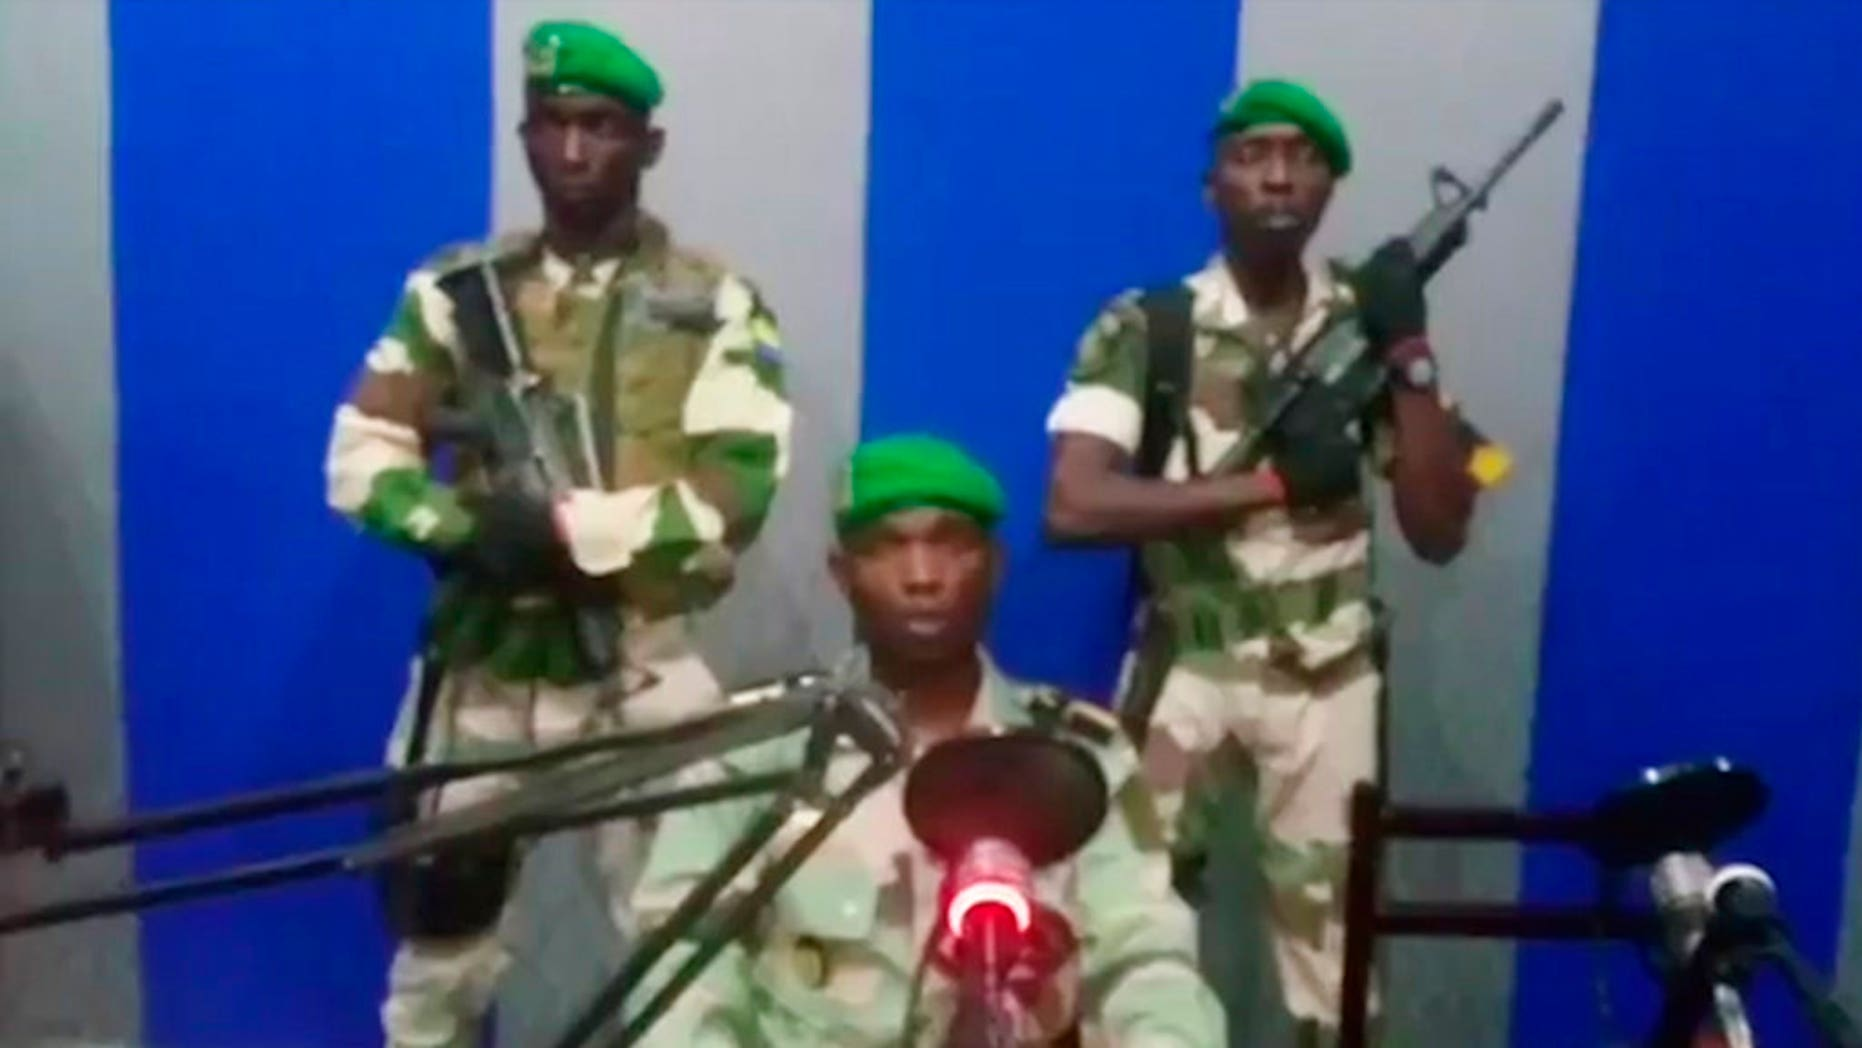 A soldier who identified himself as Lt. Obiang Ondo Kelly, commander of the Republican Guard, reads a statement on state television broadcast from Libreville, saying the military has seized control of the government. (